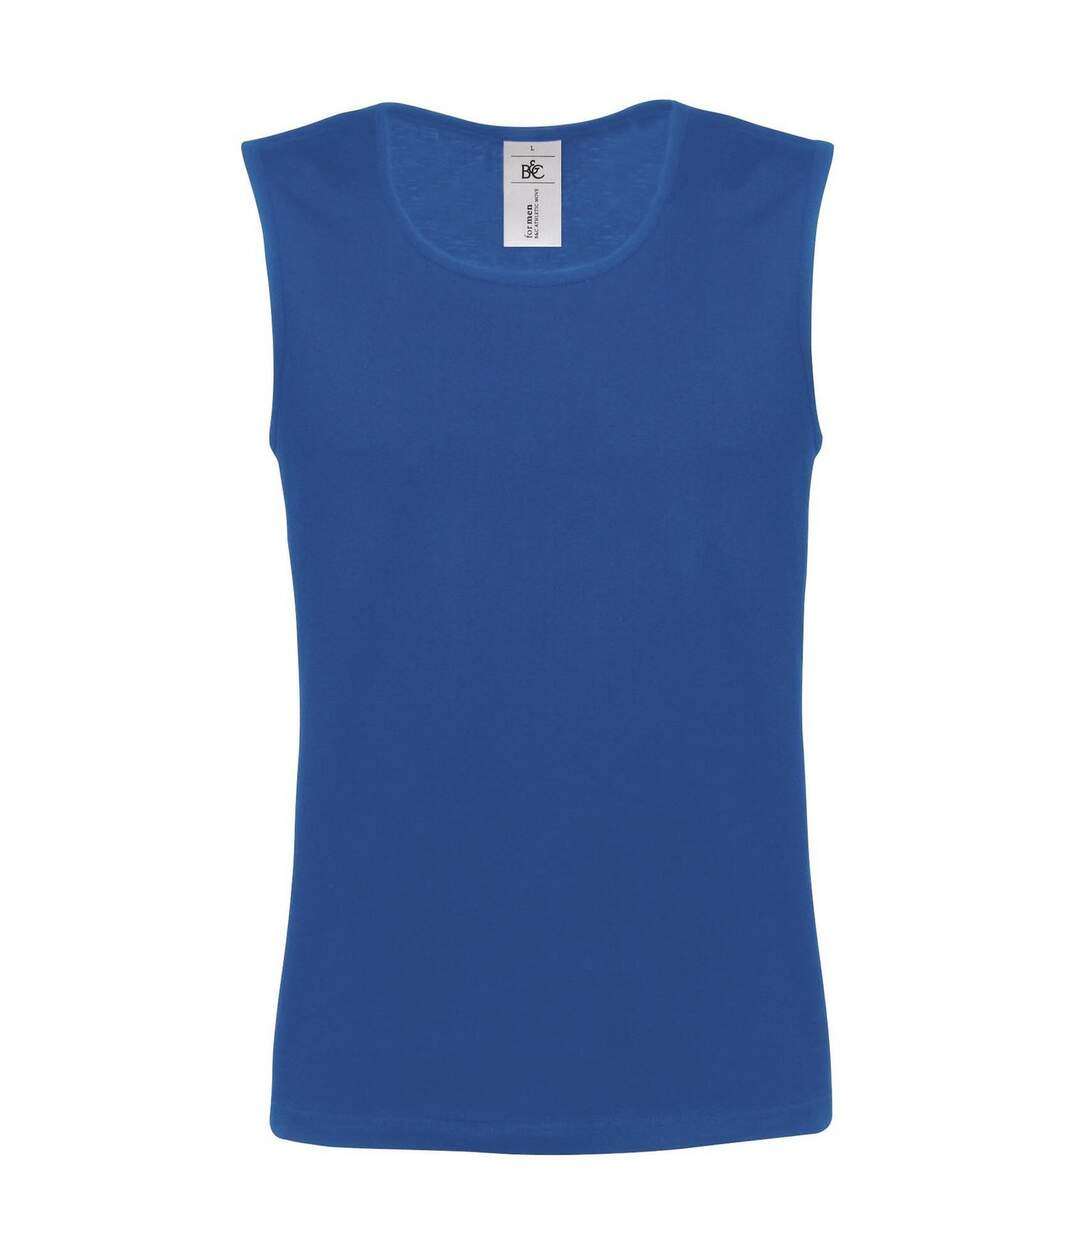 B&C Mens Move Sleeveless Athletic Sports Vest Top (Royal Blue) - UTRW3499